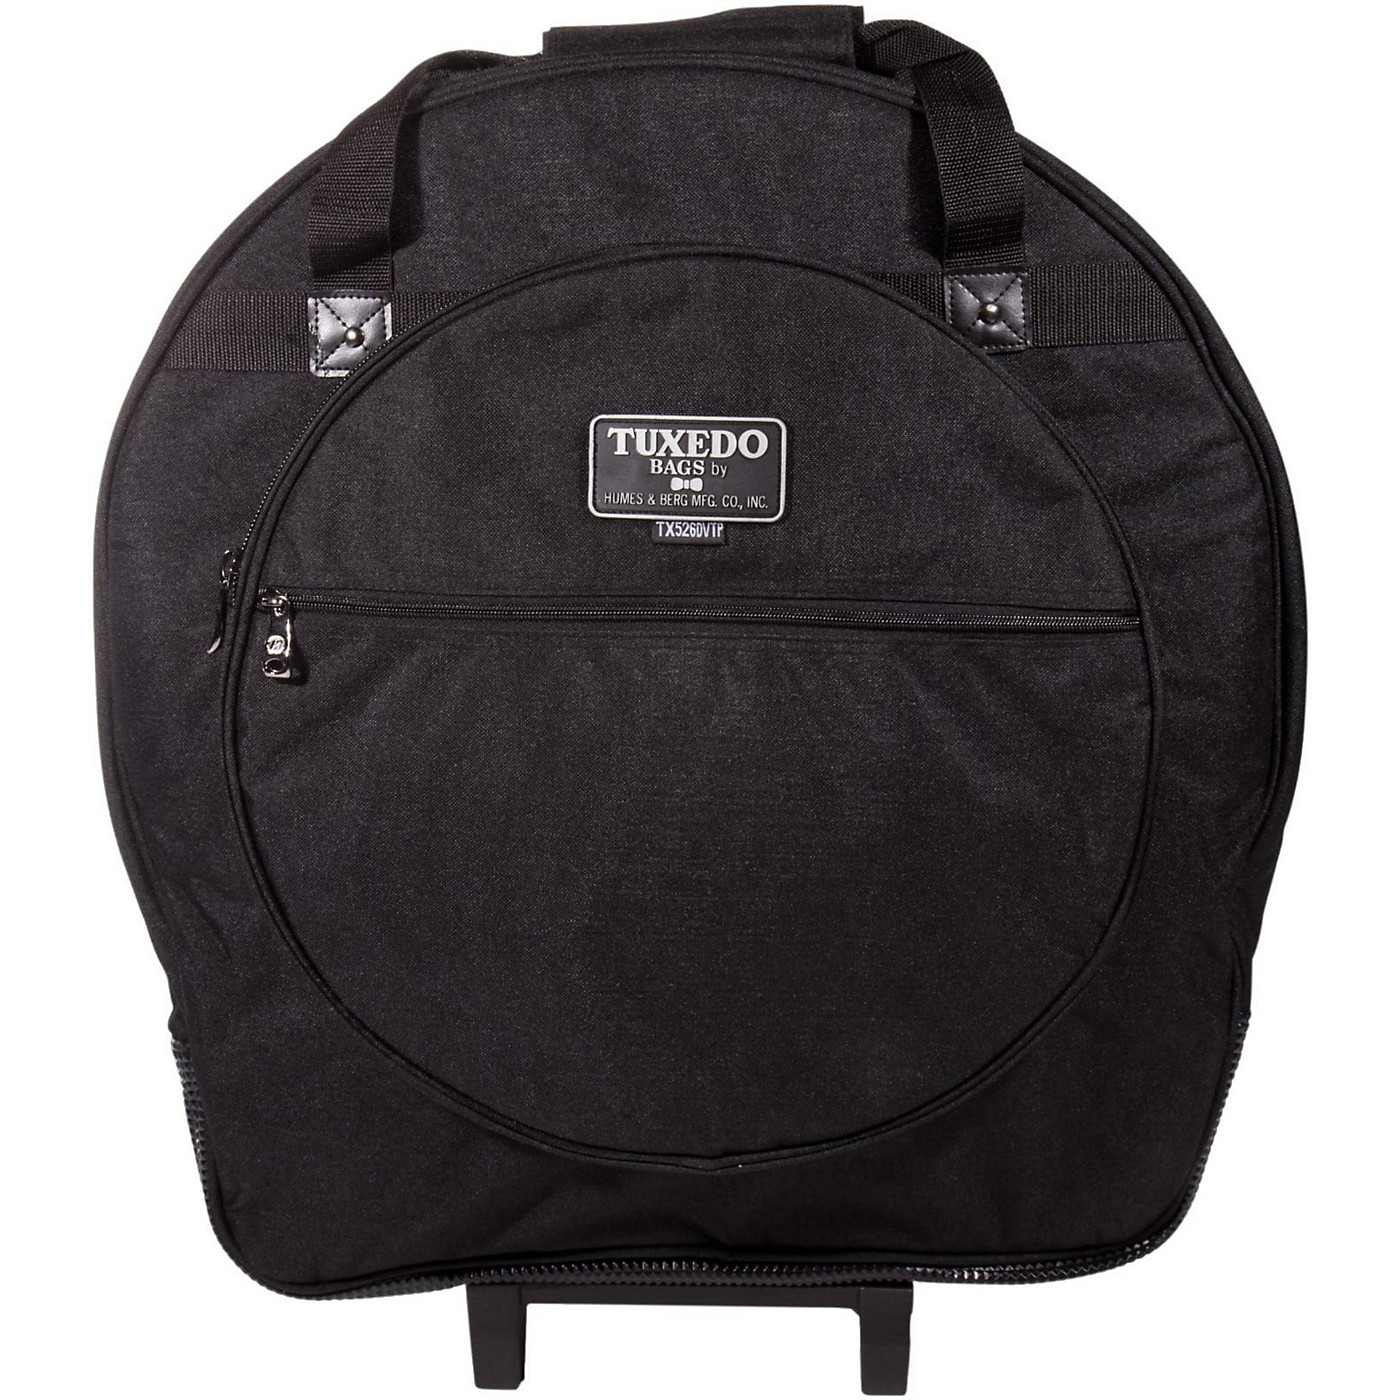 Humes & Berg Tuxedo Tilt-N-Pull Cymbal Bag with Dividers thumbnail